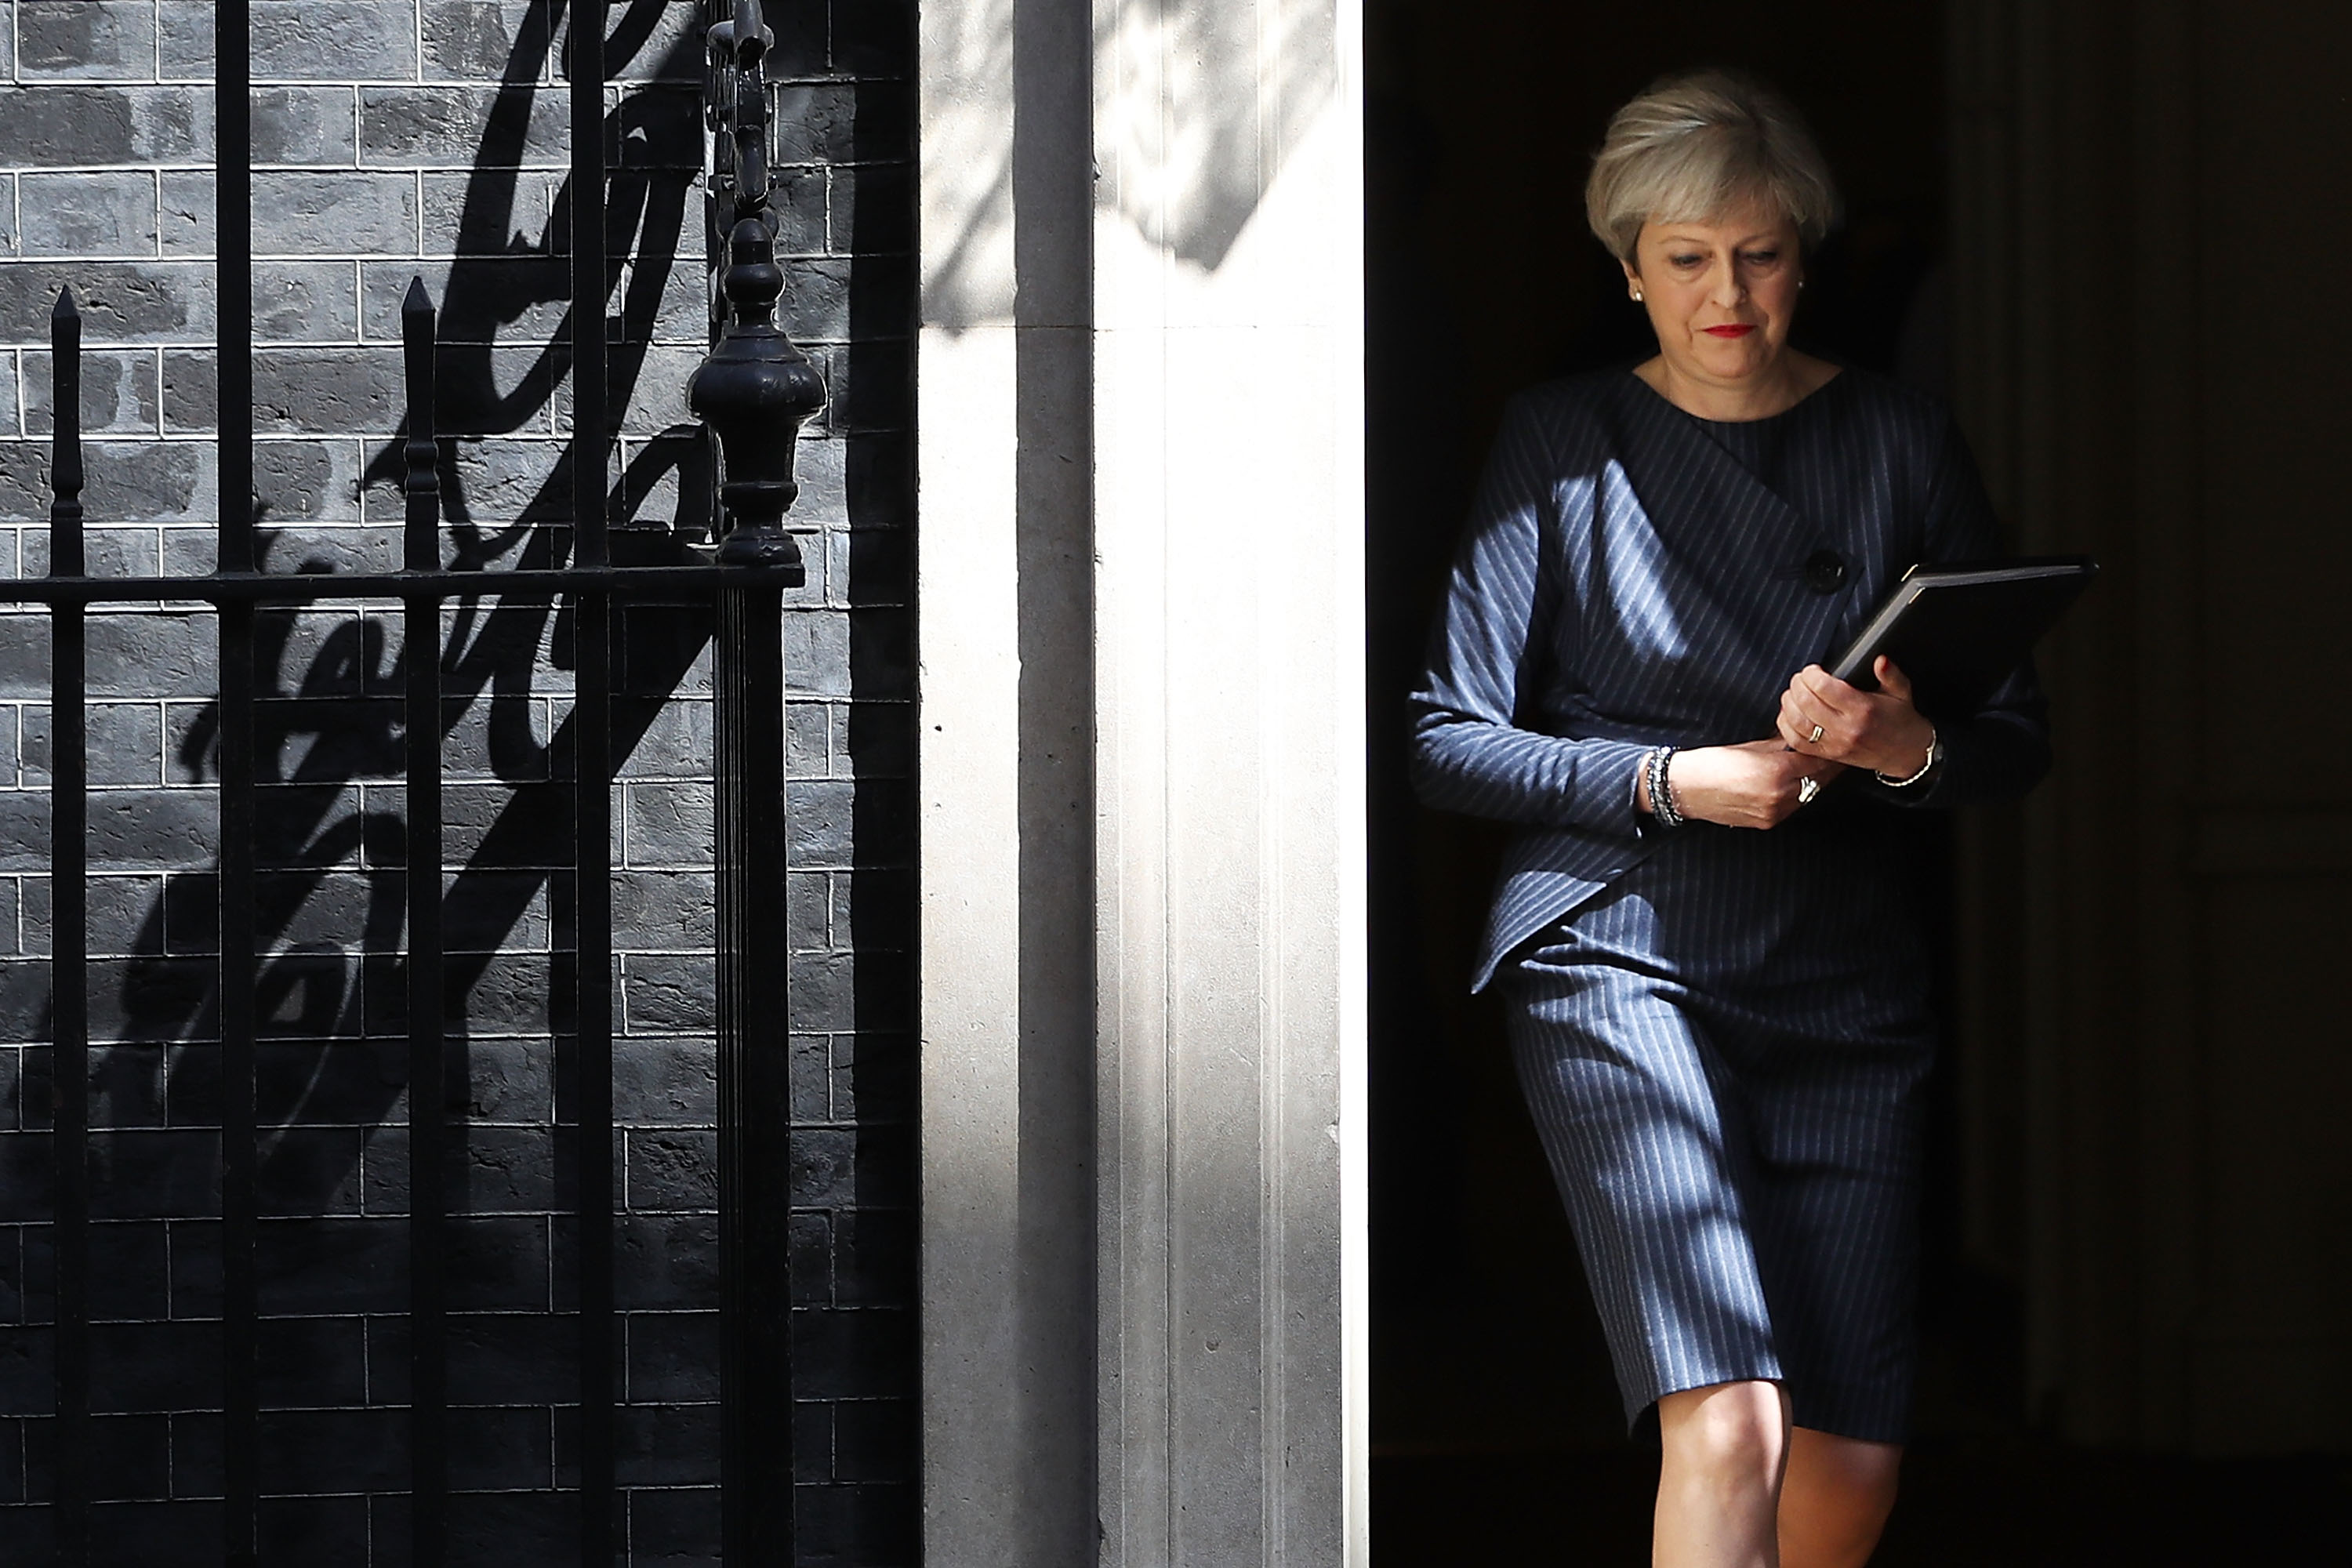 Prime Minister Theresa May prepares to make a statement to the nation in Downing Street on April 18, 2017 in London, United Kingdom.